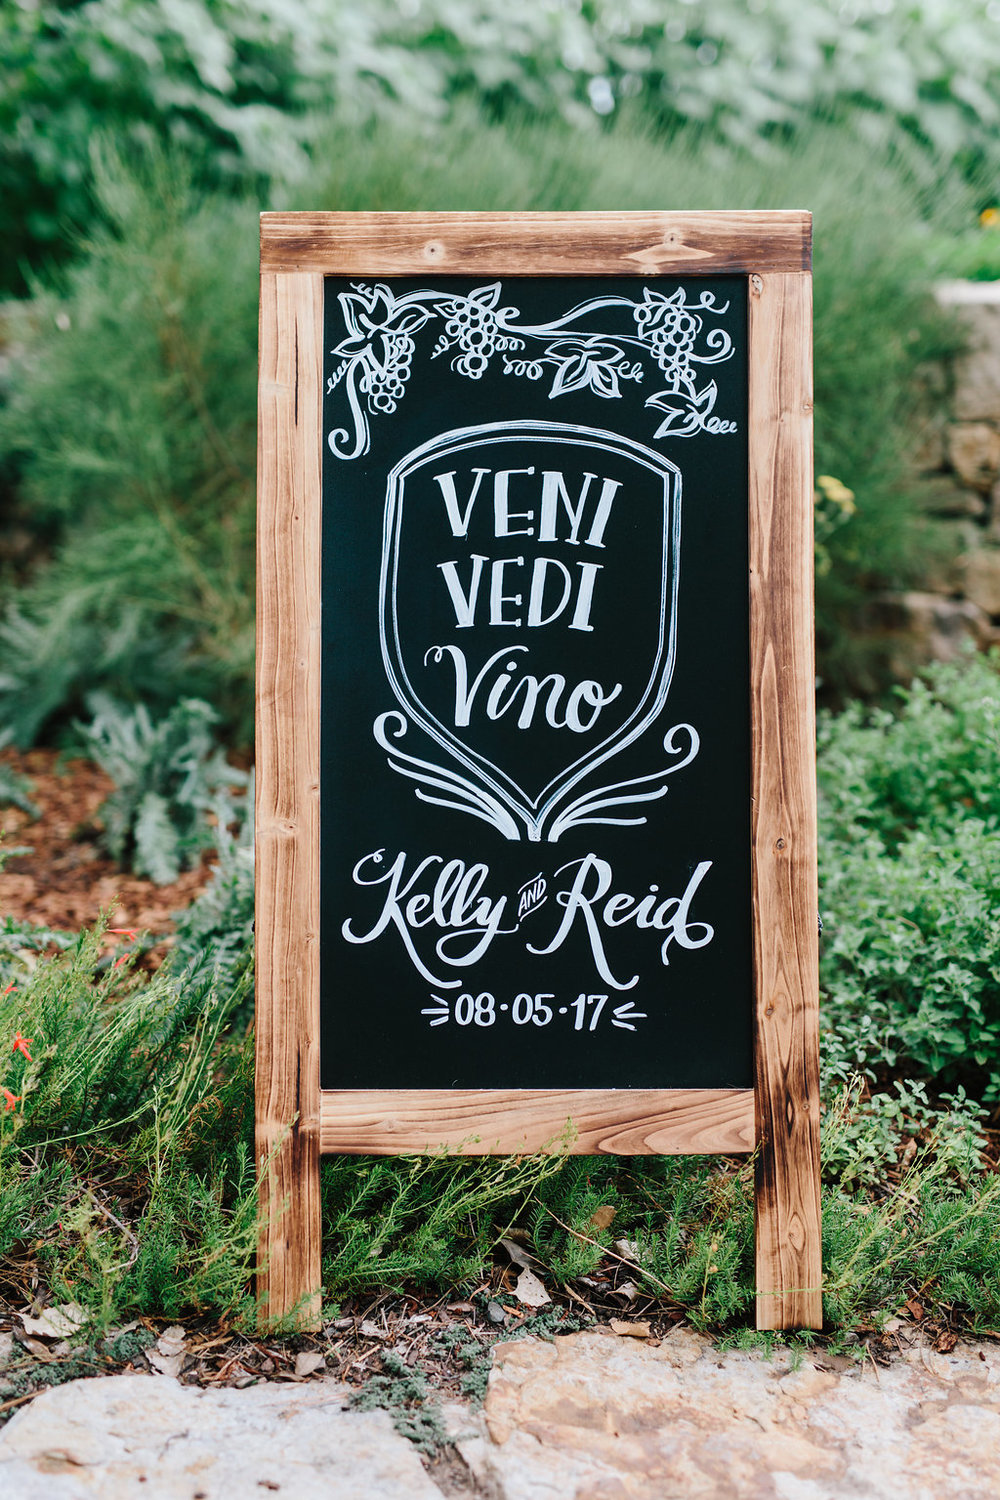 Kelly_Reid_Wedding_-1078.jpg